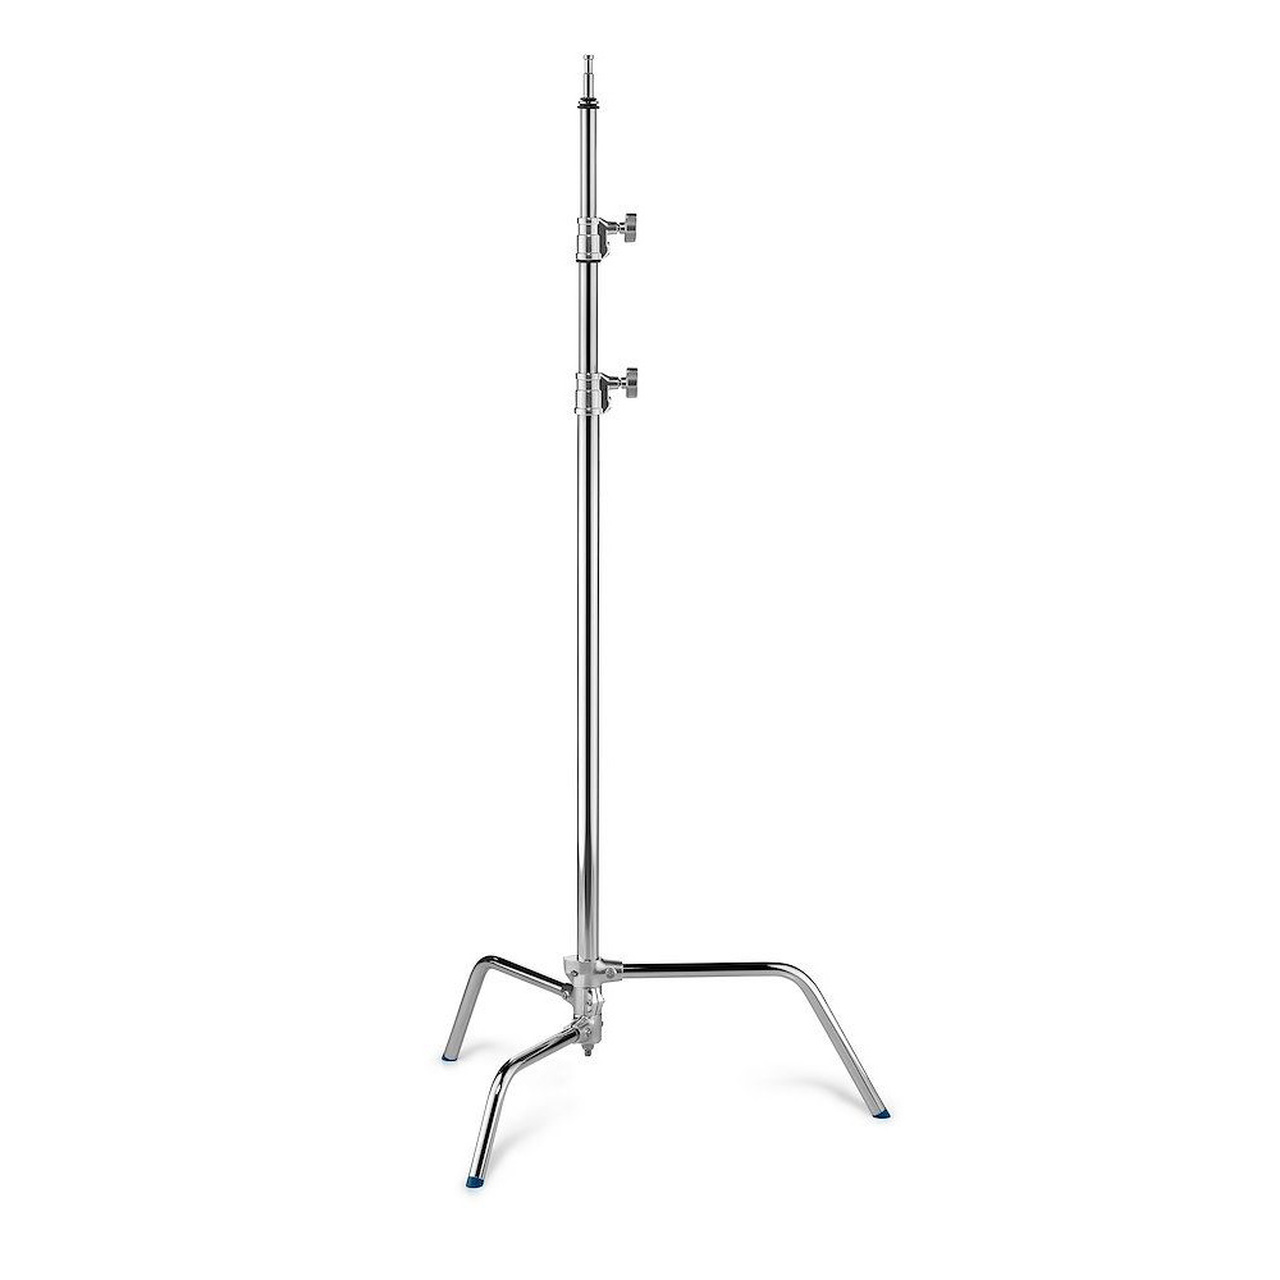 AVENGER C-STAND 33 - 10.7' (CHROME)